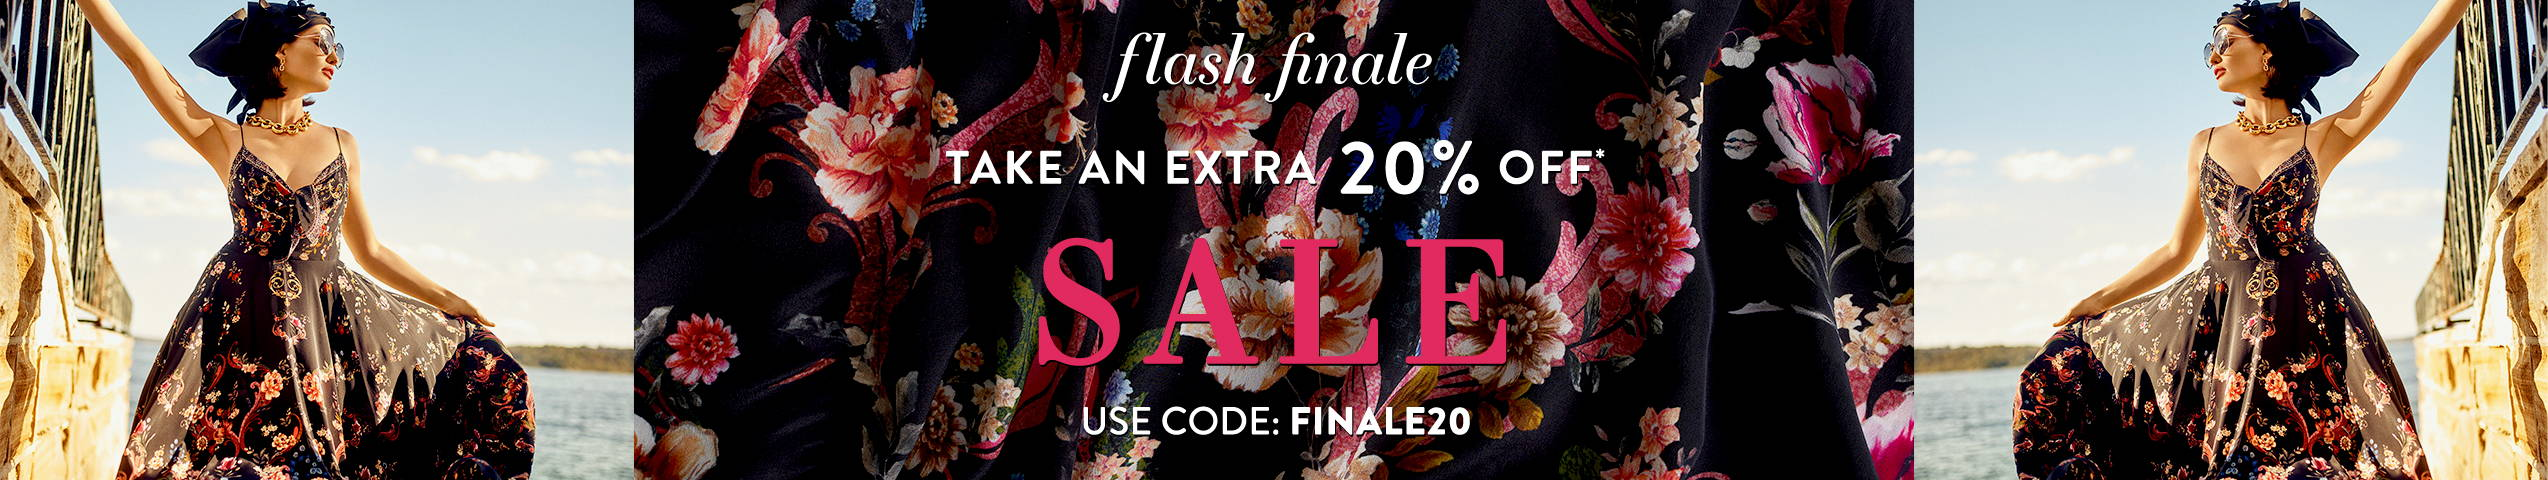 Take an extra 20% off* SALE | Use Code FINALE20